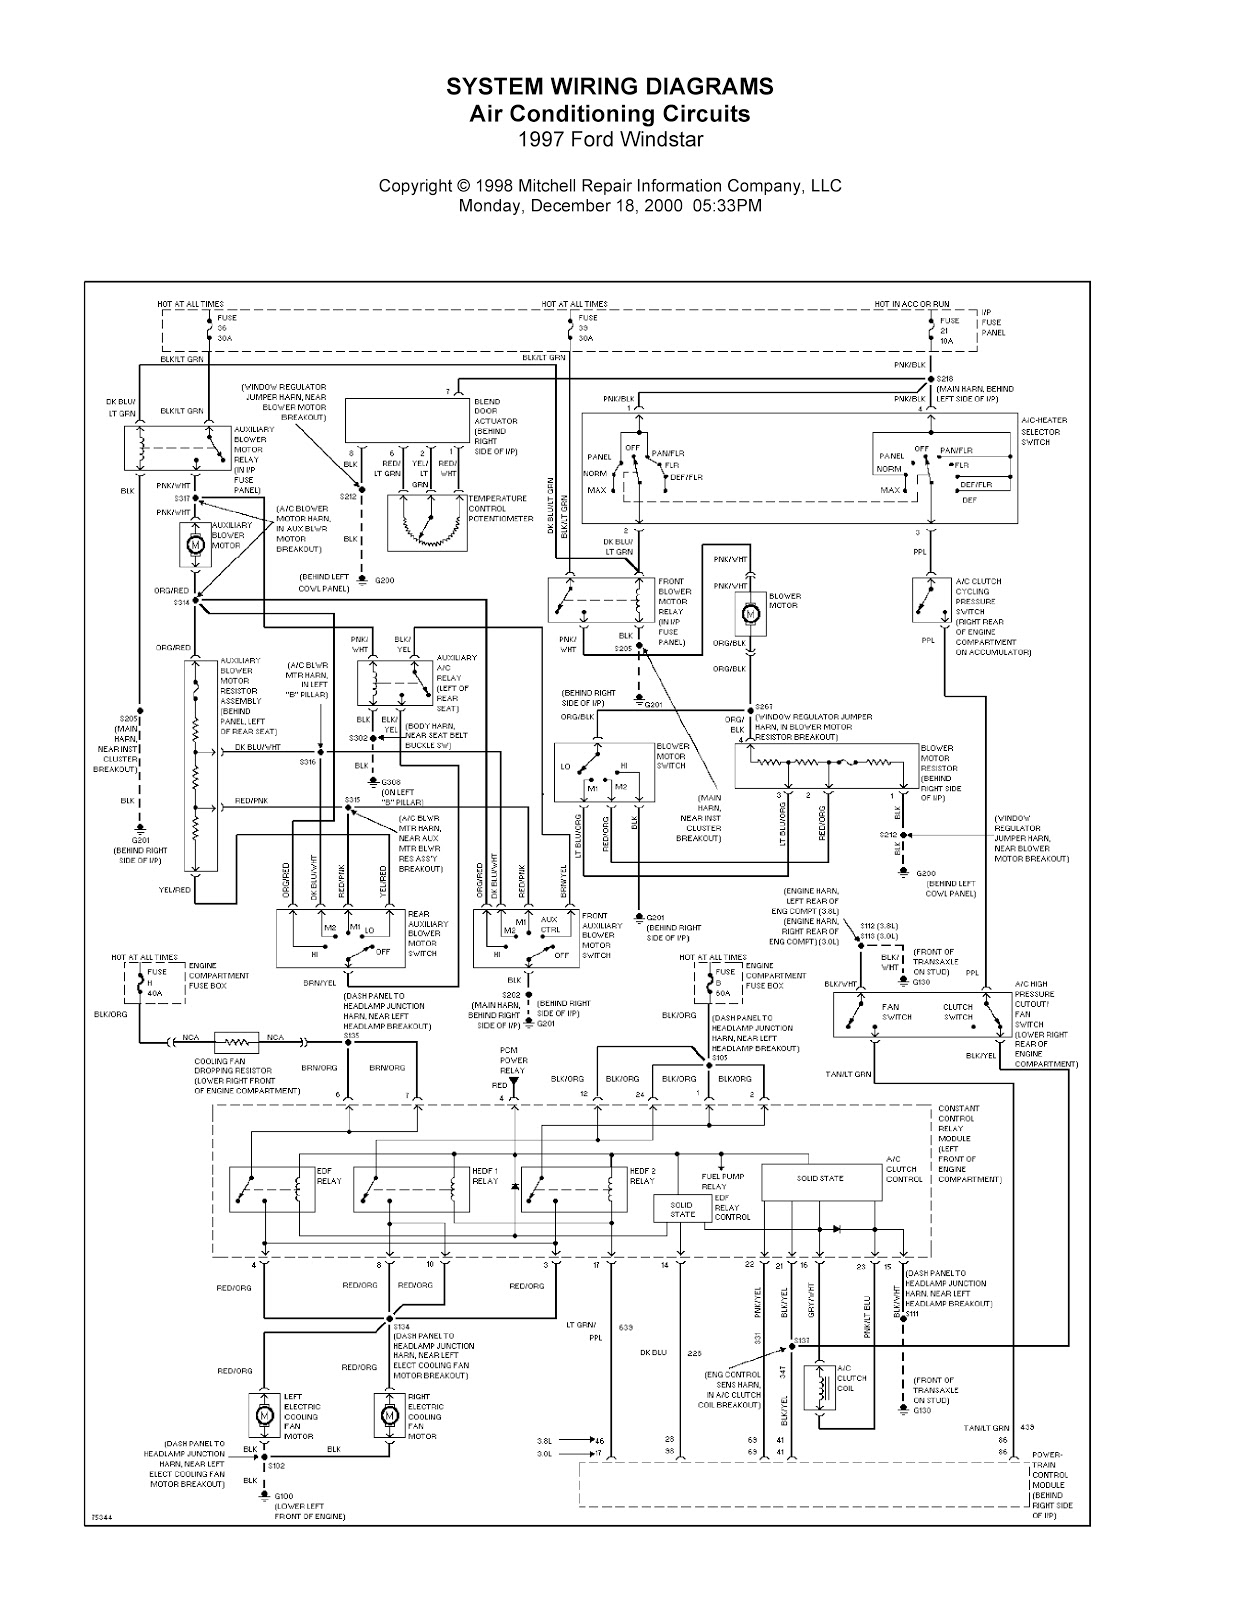 0001 1997 ford windstar complete system wiring diagrams wiring 1995 ford windstar fuse box diagram at soozxer.org